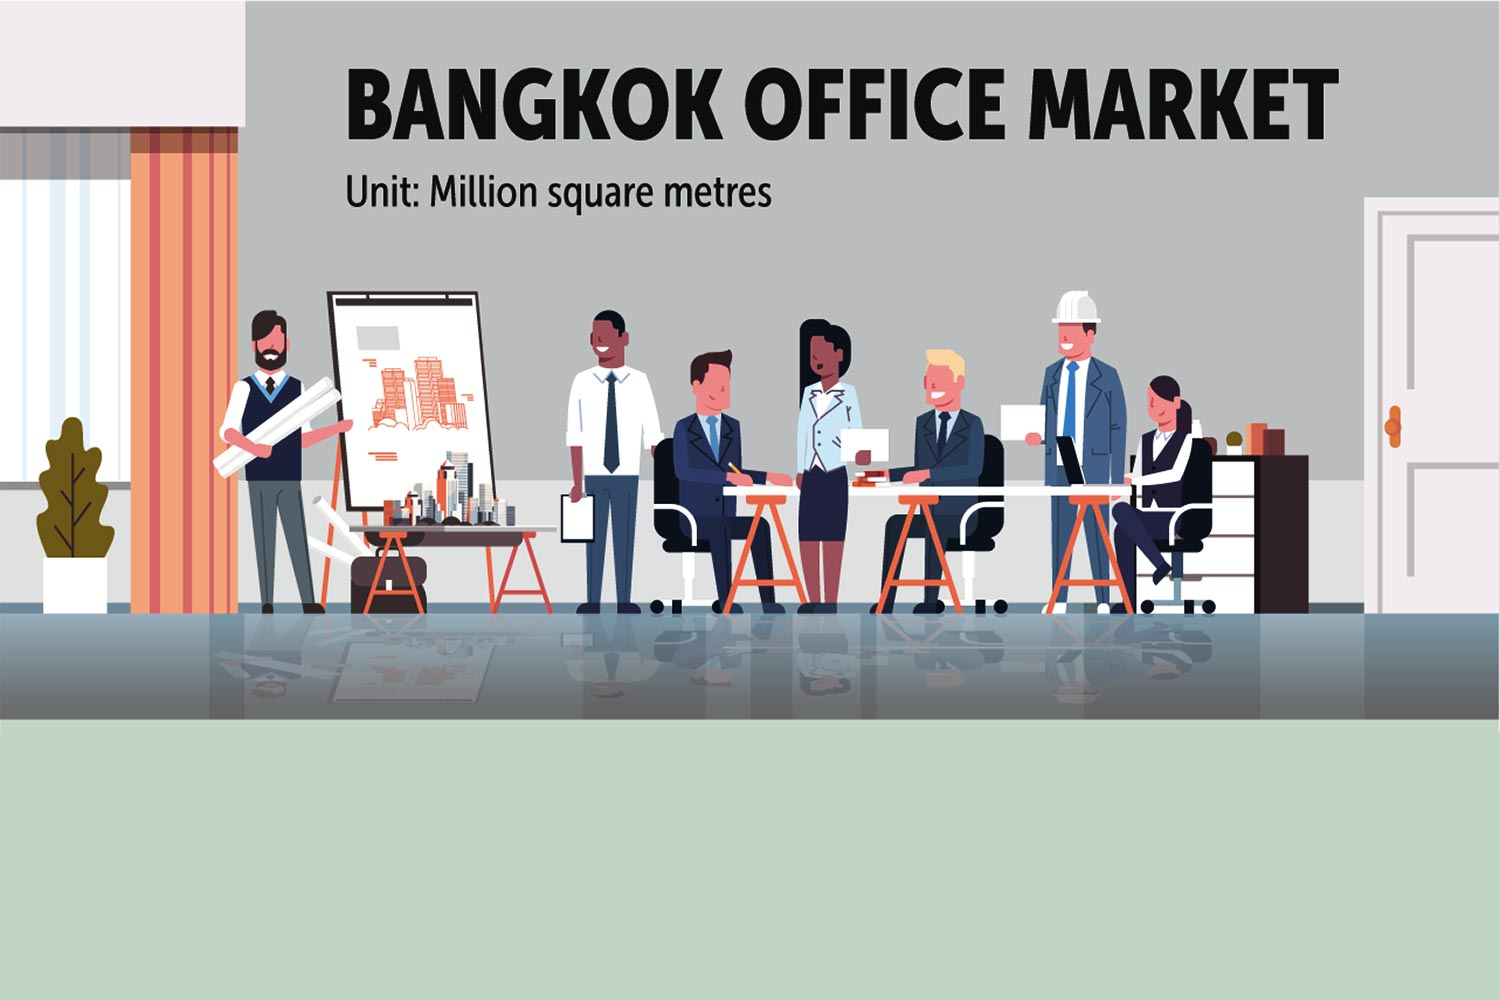 Occupancy rate in Bangkok CBD dips in Q3